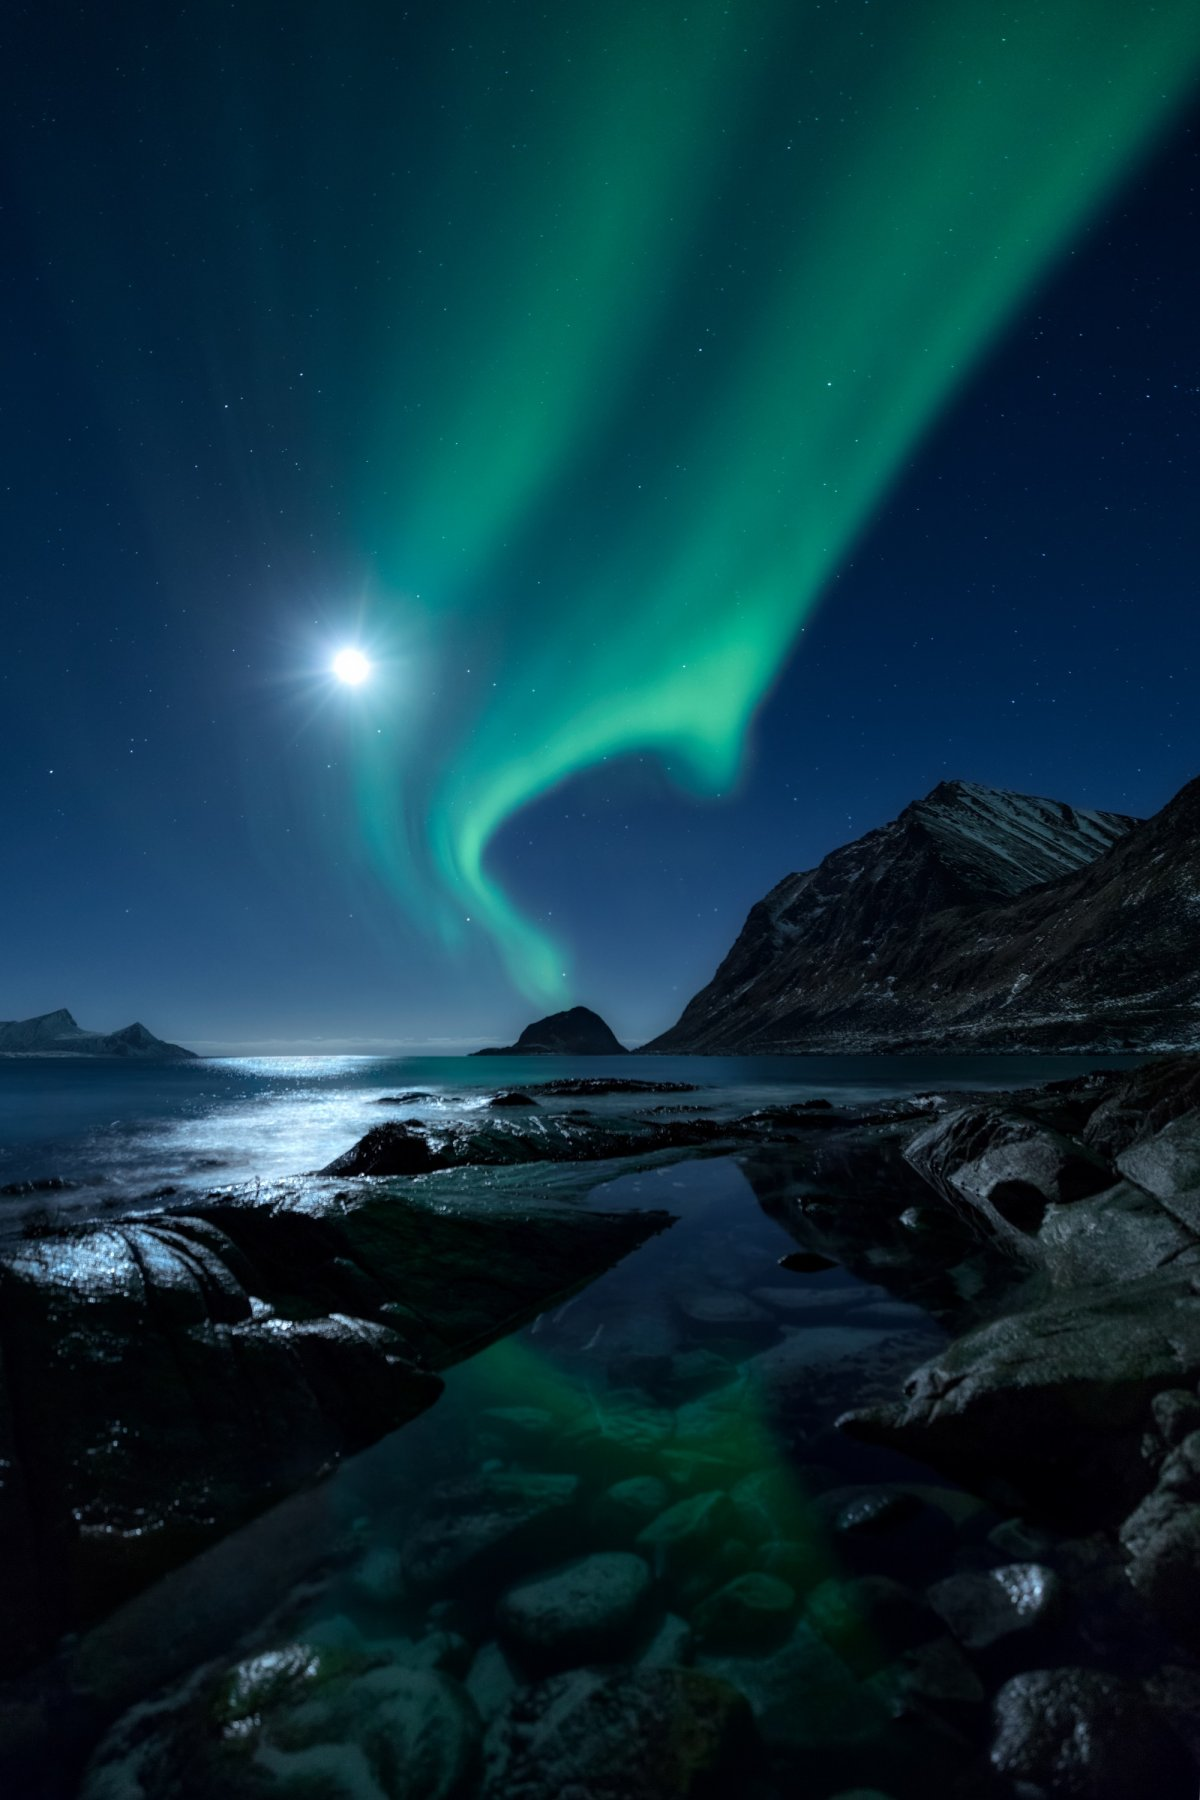 (Mikkel Beiter/Insight Astronomy Photographer of the Year)